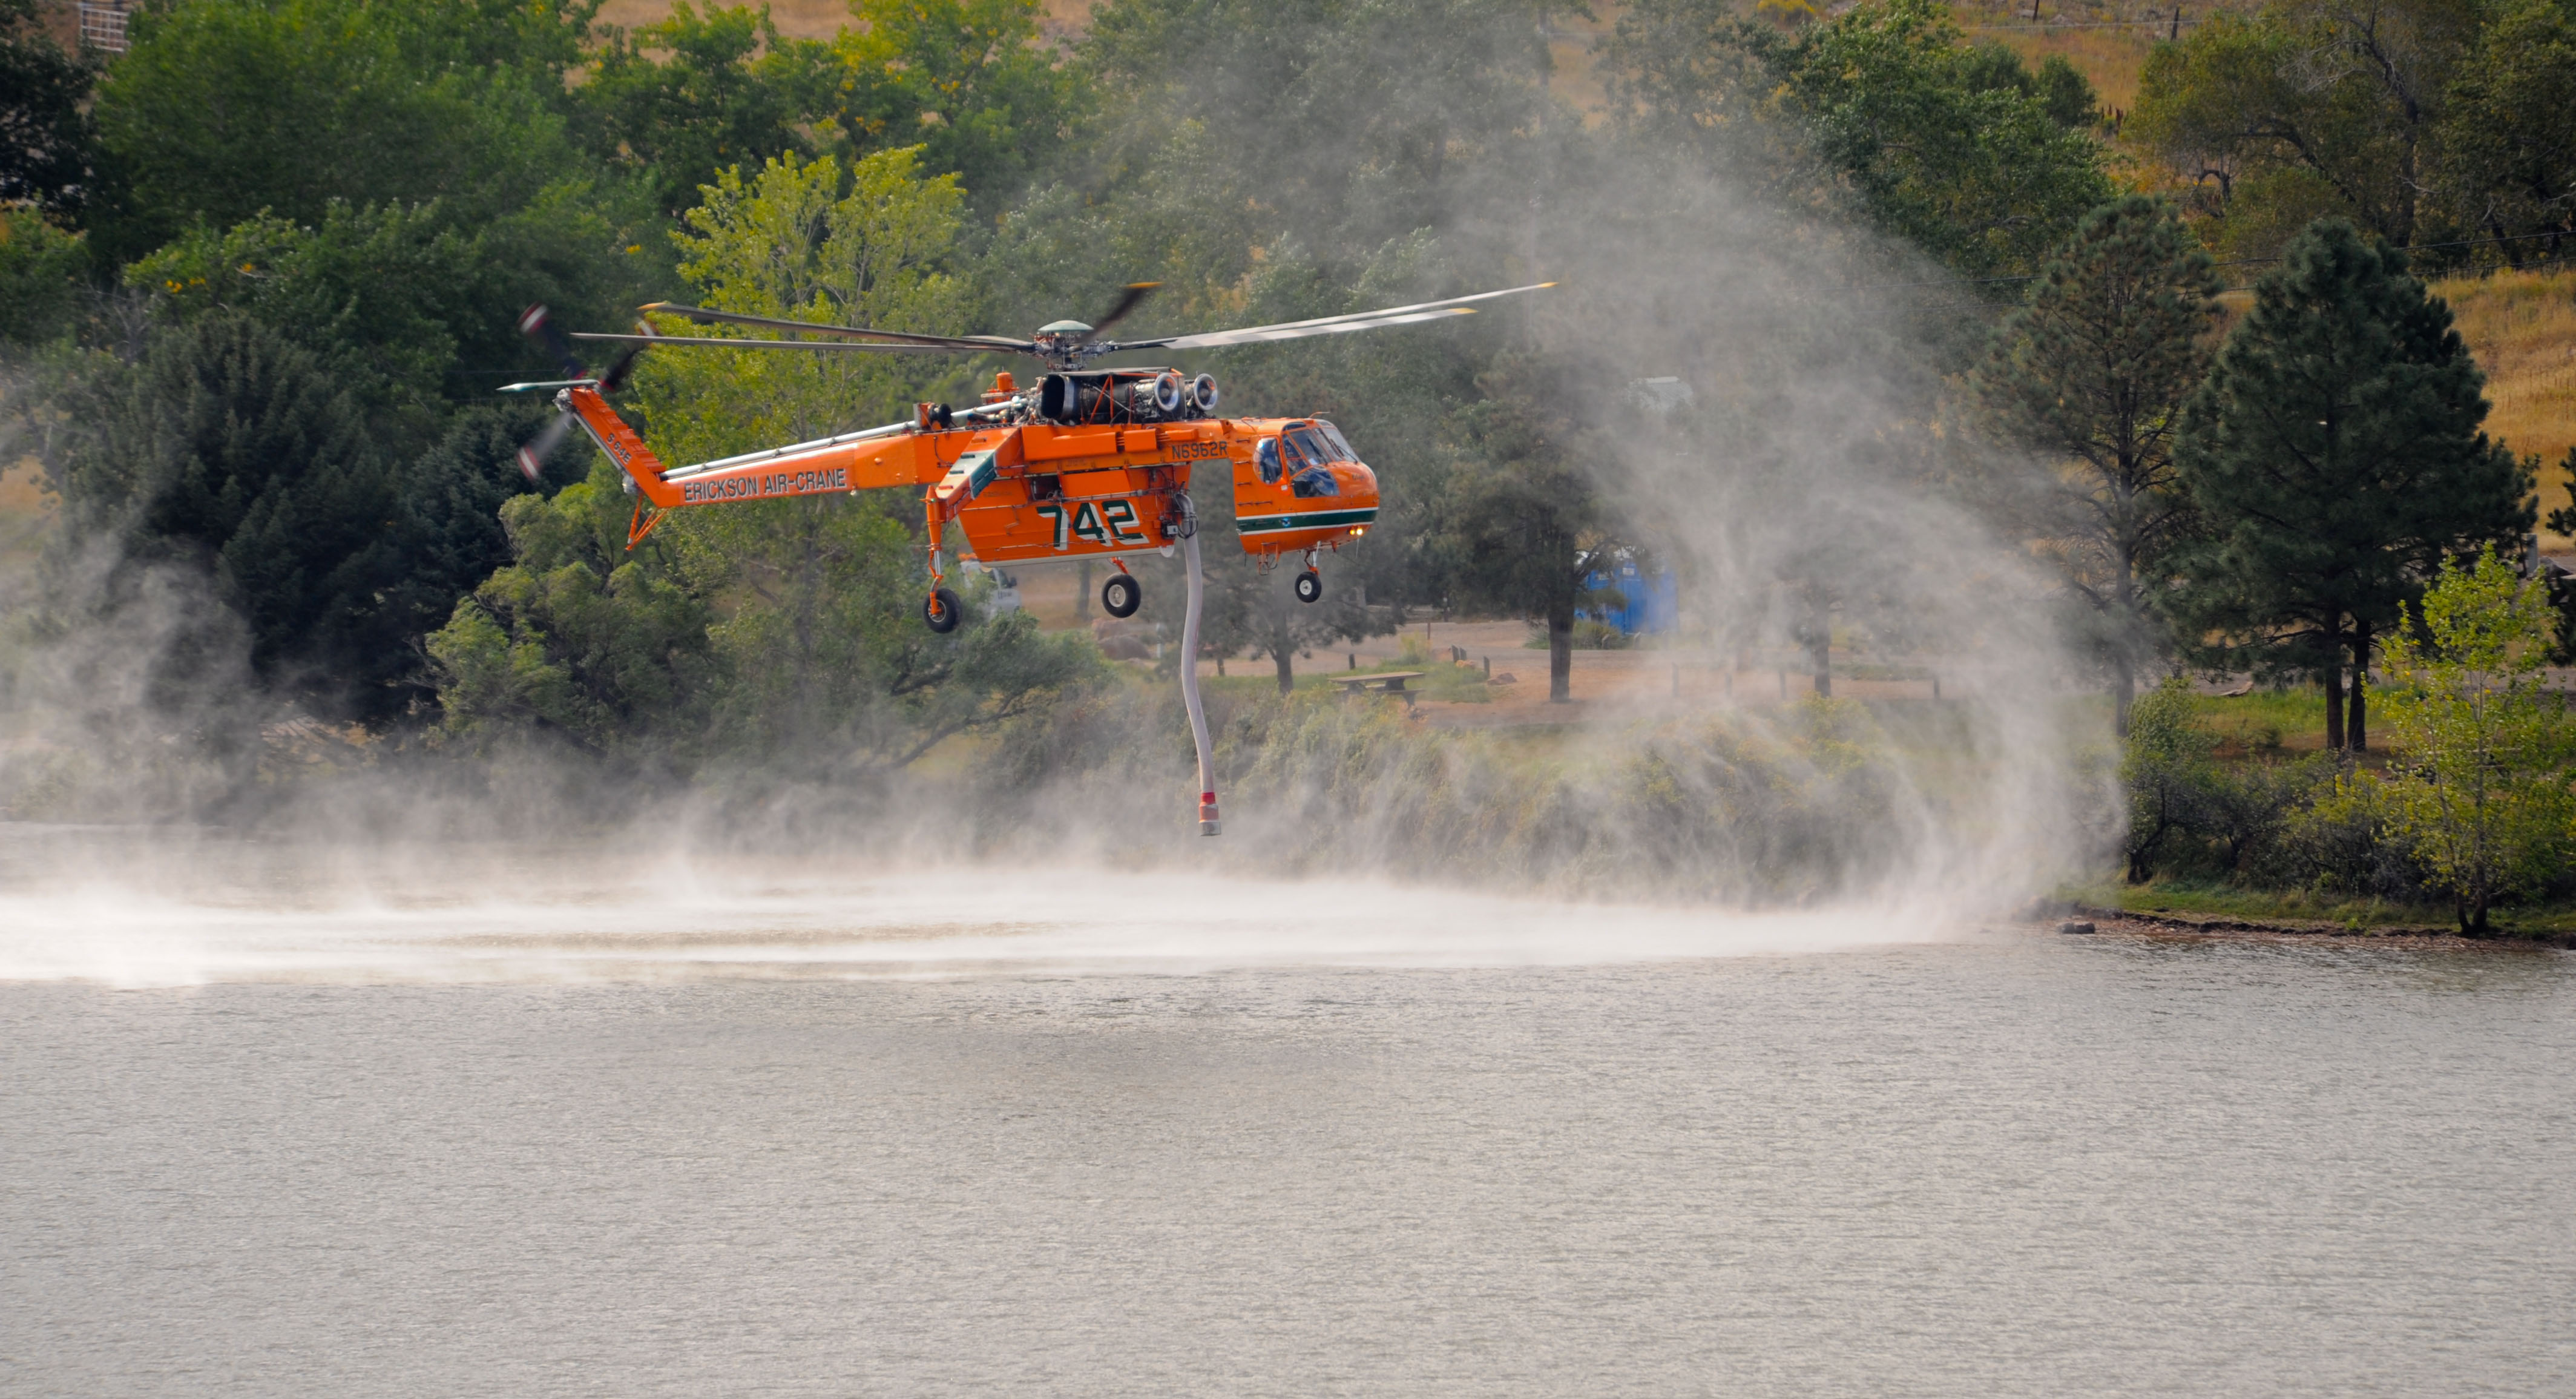 the co helicopter with File Fema   45355   Firefighting Helicopter Hovering Over A Lake In Colorado on Gallery likewise Martin Brundle E Type together with Photo106 additionally Car Ploughs 20 People London Bridge additionally Carp Fishing Phrases.